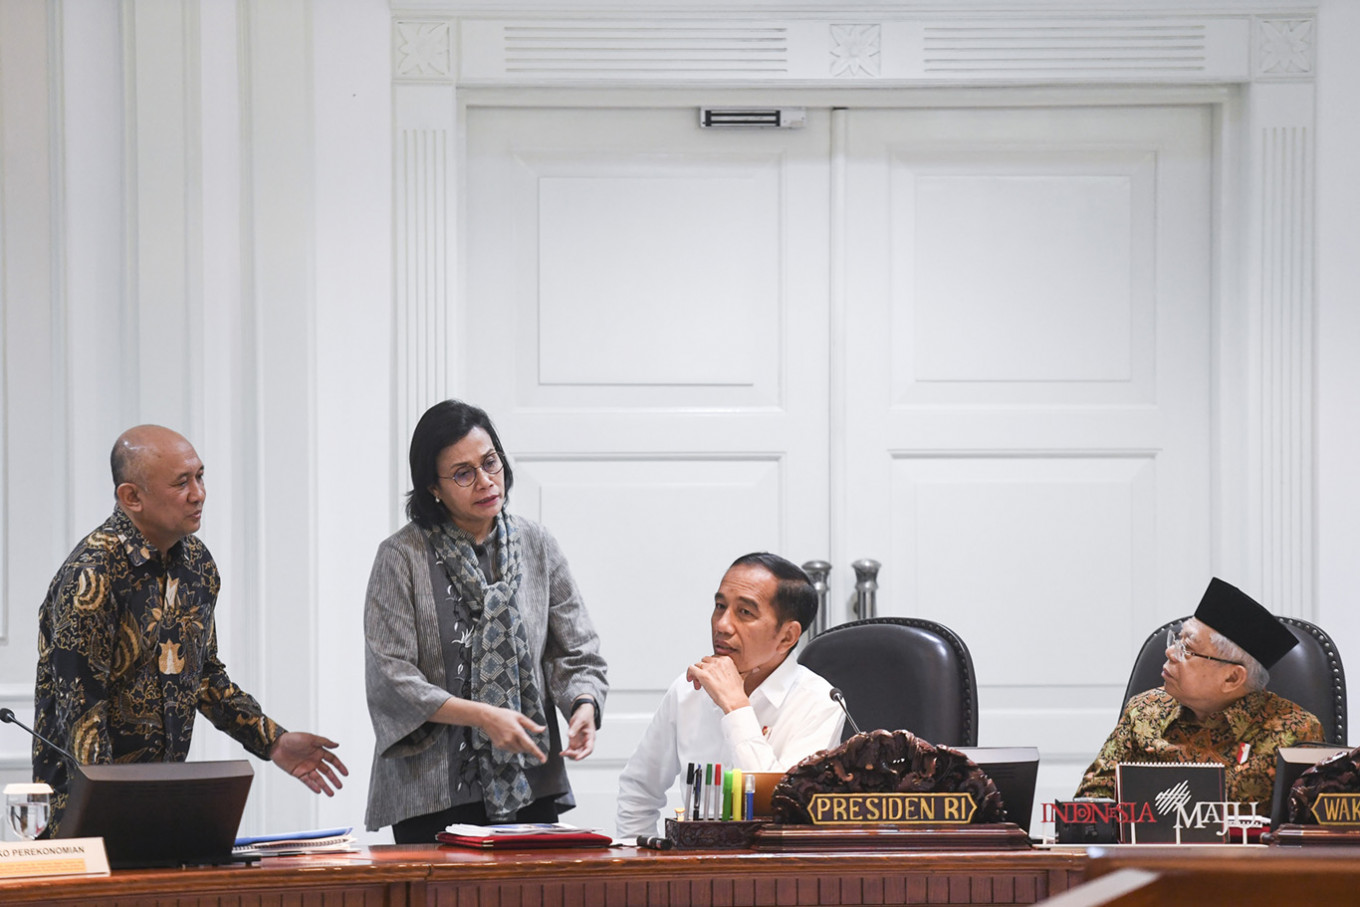 In fight against COVID-19, Jokowi taps VP to deal with what he knows best: Religion